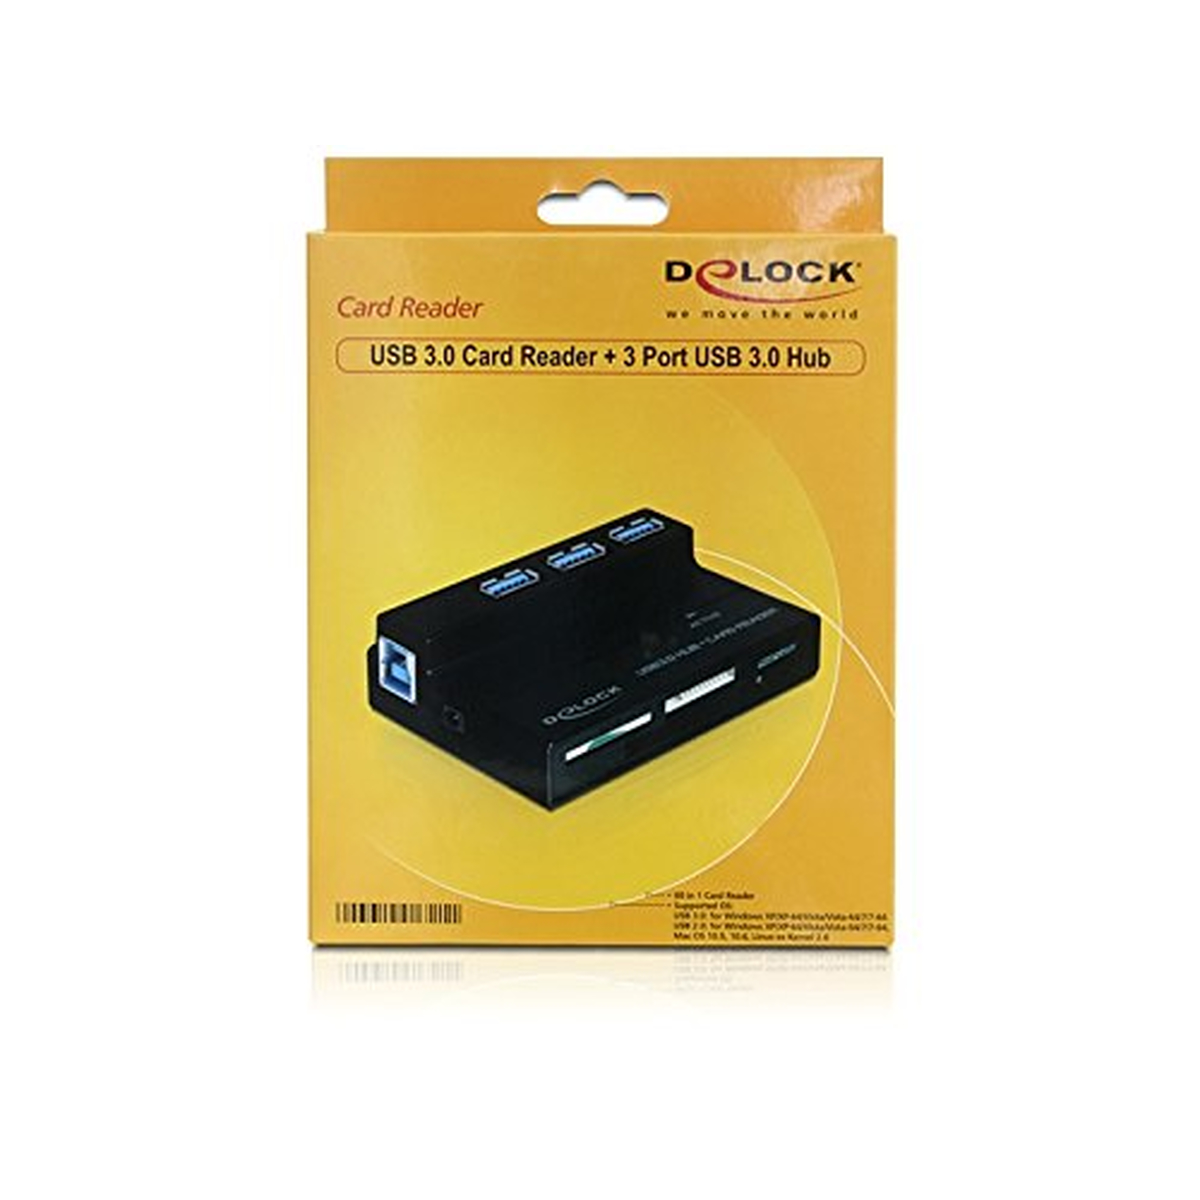 DeLOCK USB 3.0 Card Reader All in 1 + 3 Port USB 3.0 HUB